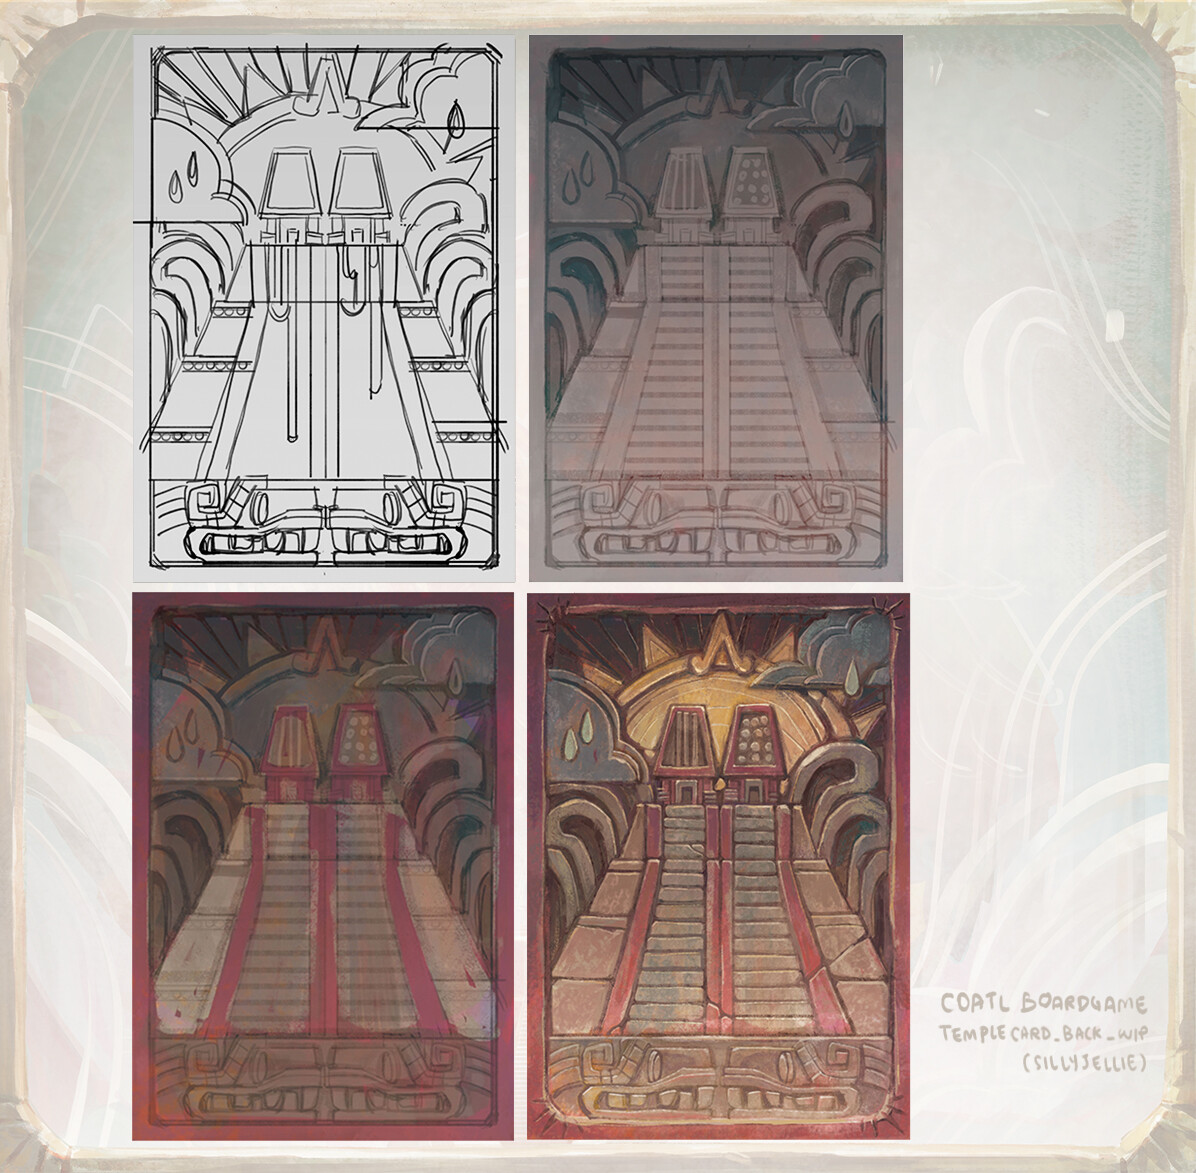 Back of temple card.  The temple is dedicated to the sun god Huitzilopochtli and water god Tlaloc.